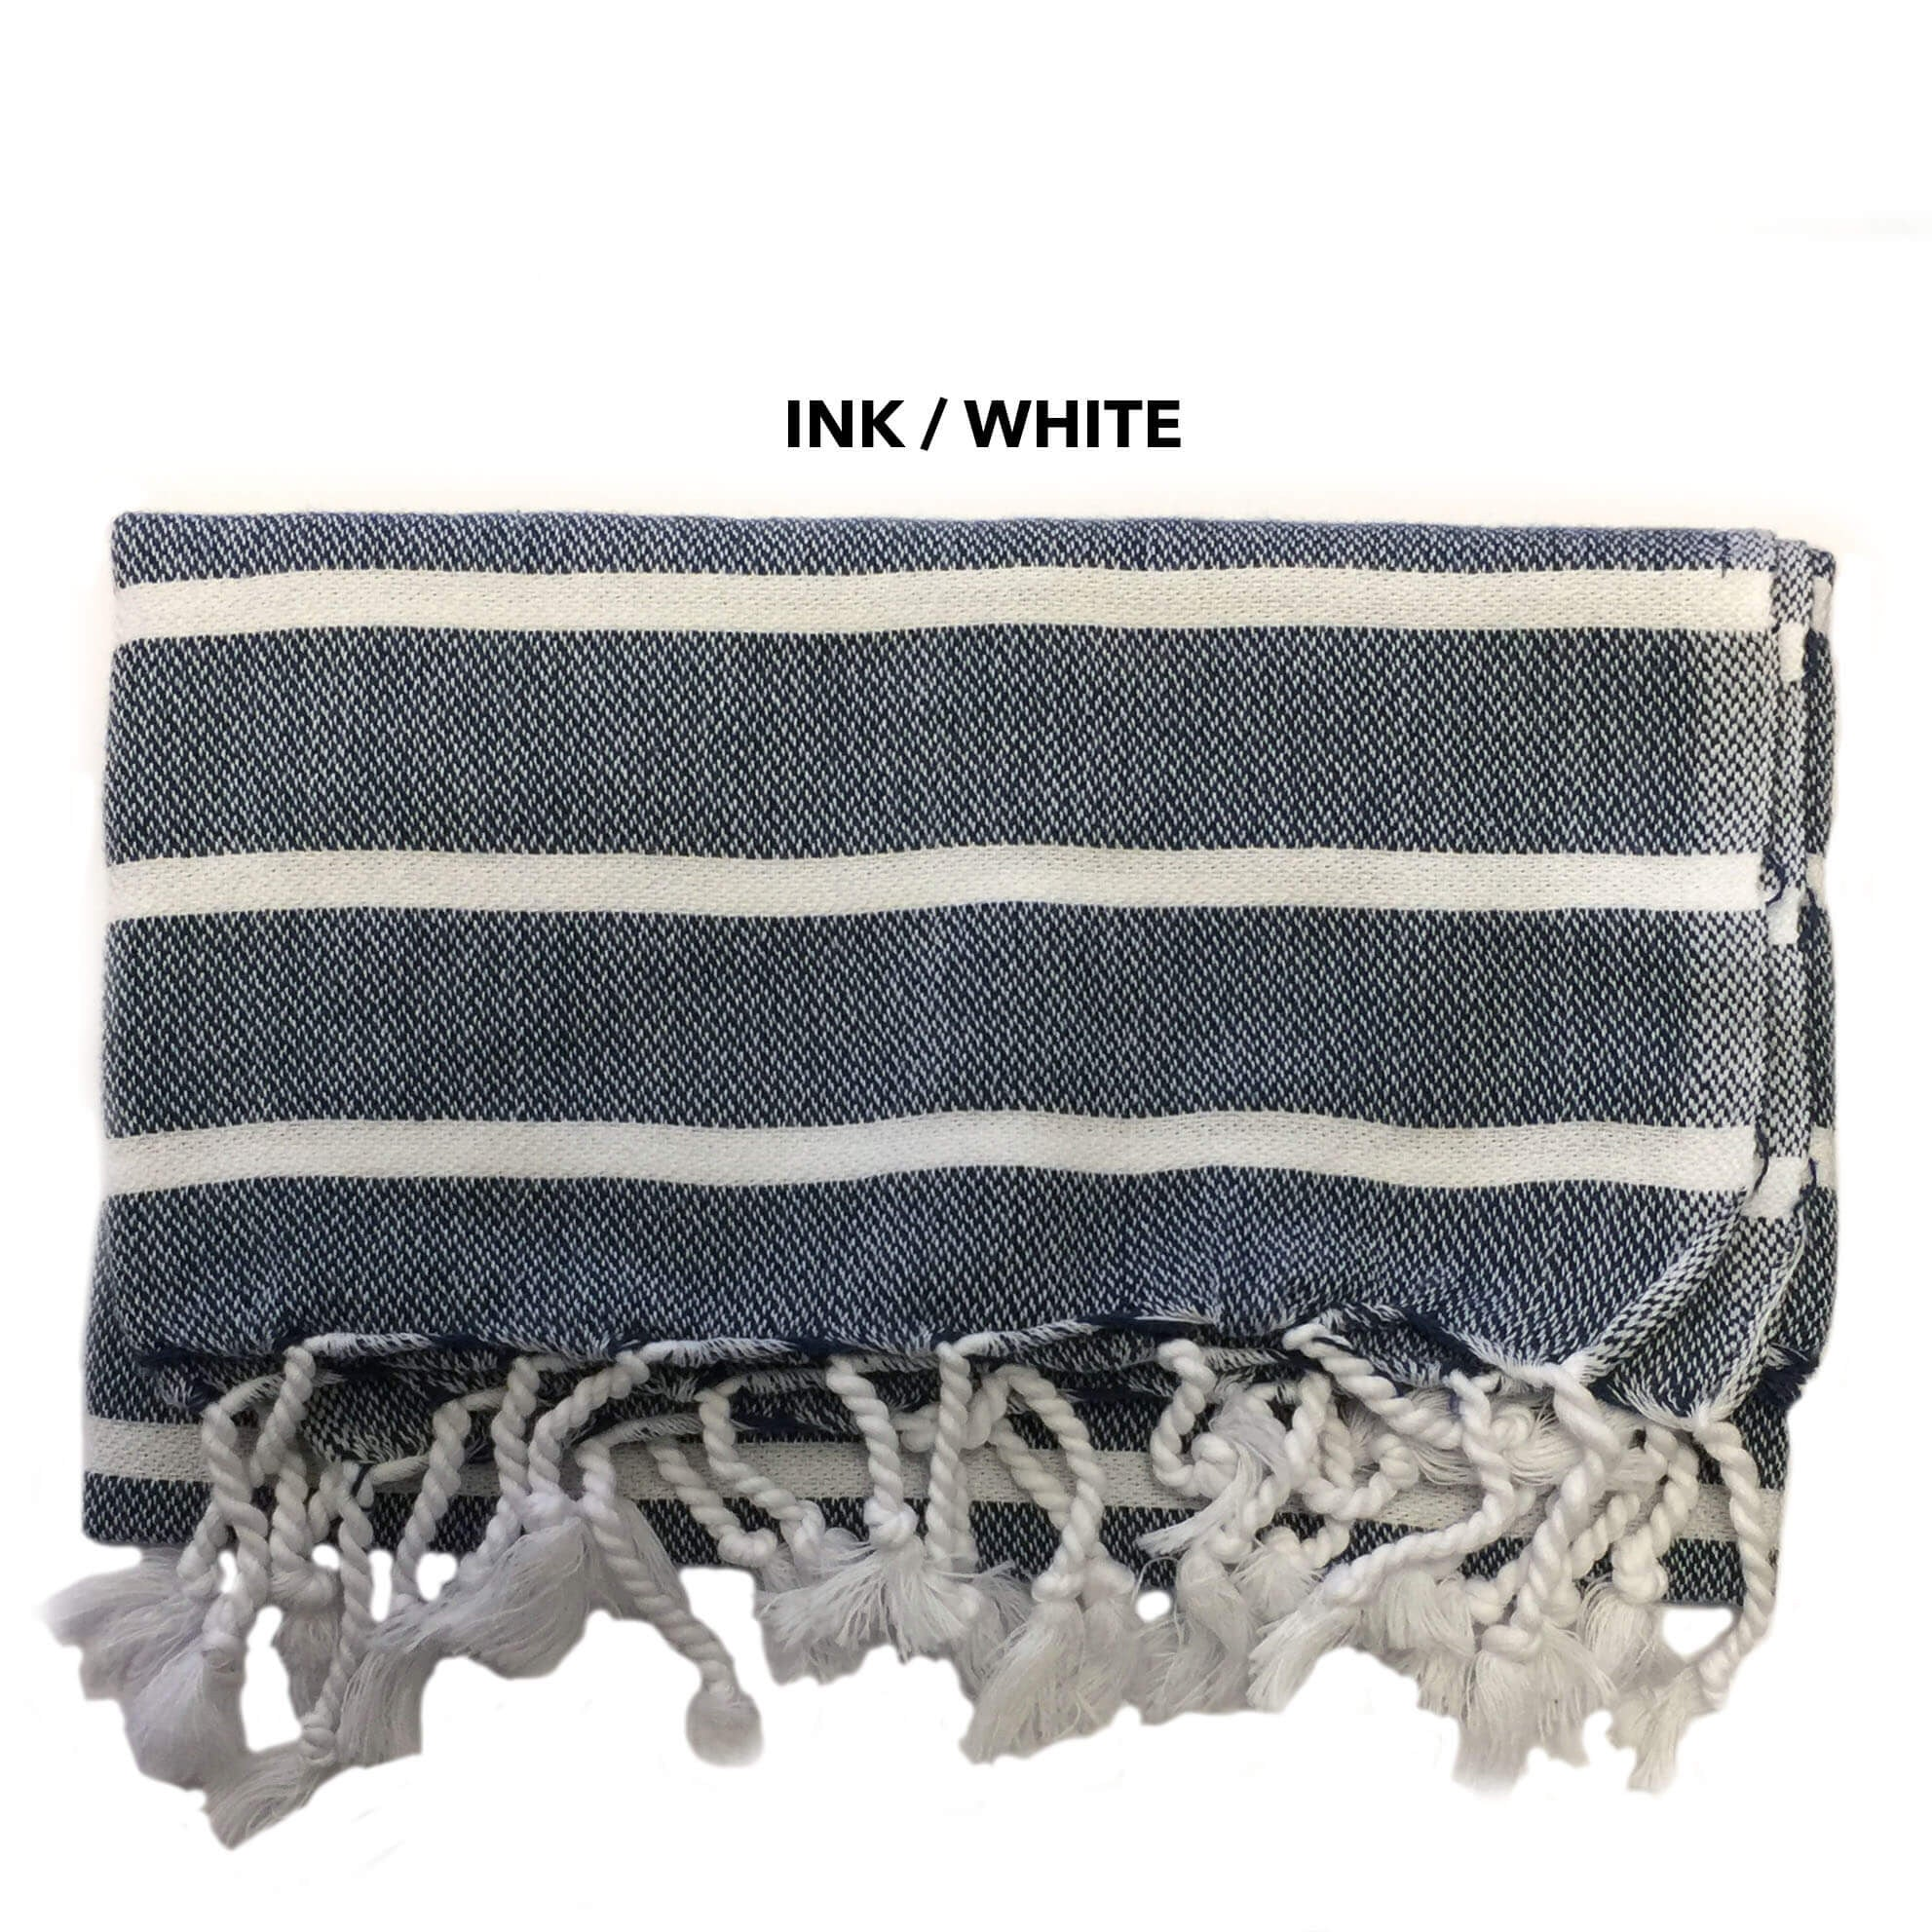 iL CANE - Twofer Towel S/M Thin Stripe